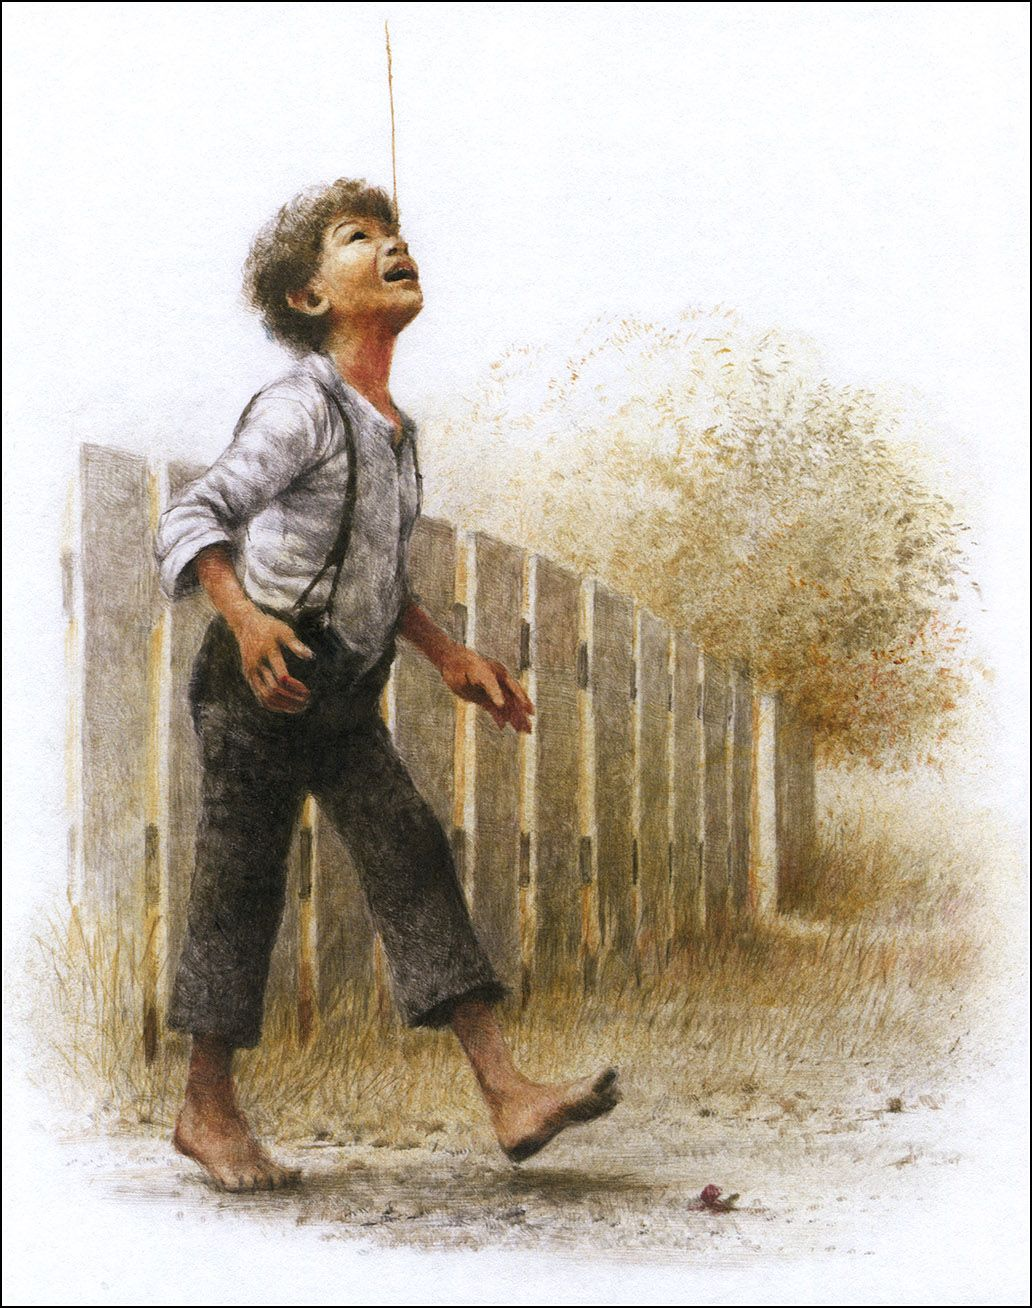 the adventures of tom sawyer by robert ingpen illustrations the adventures of tom sawyer by robert ingpen